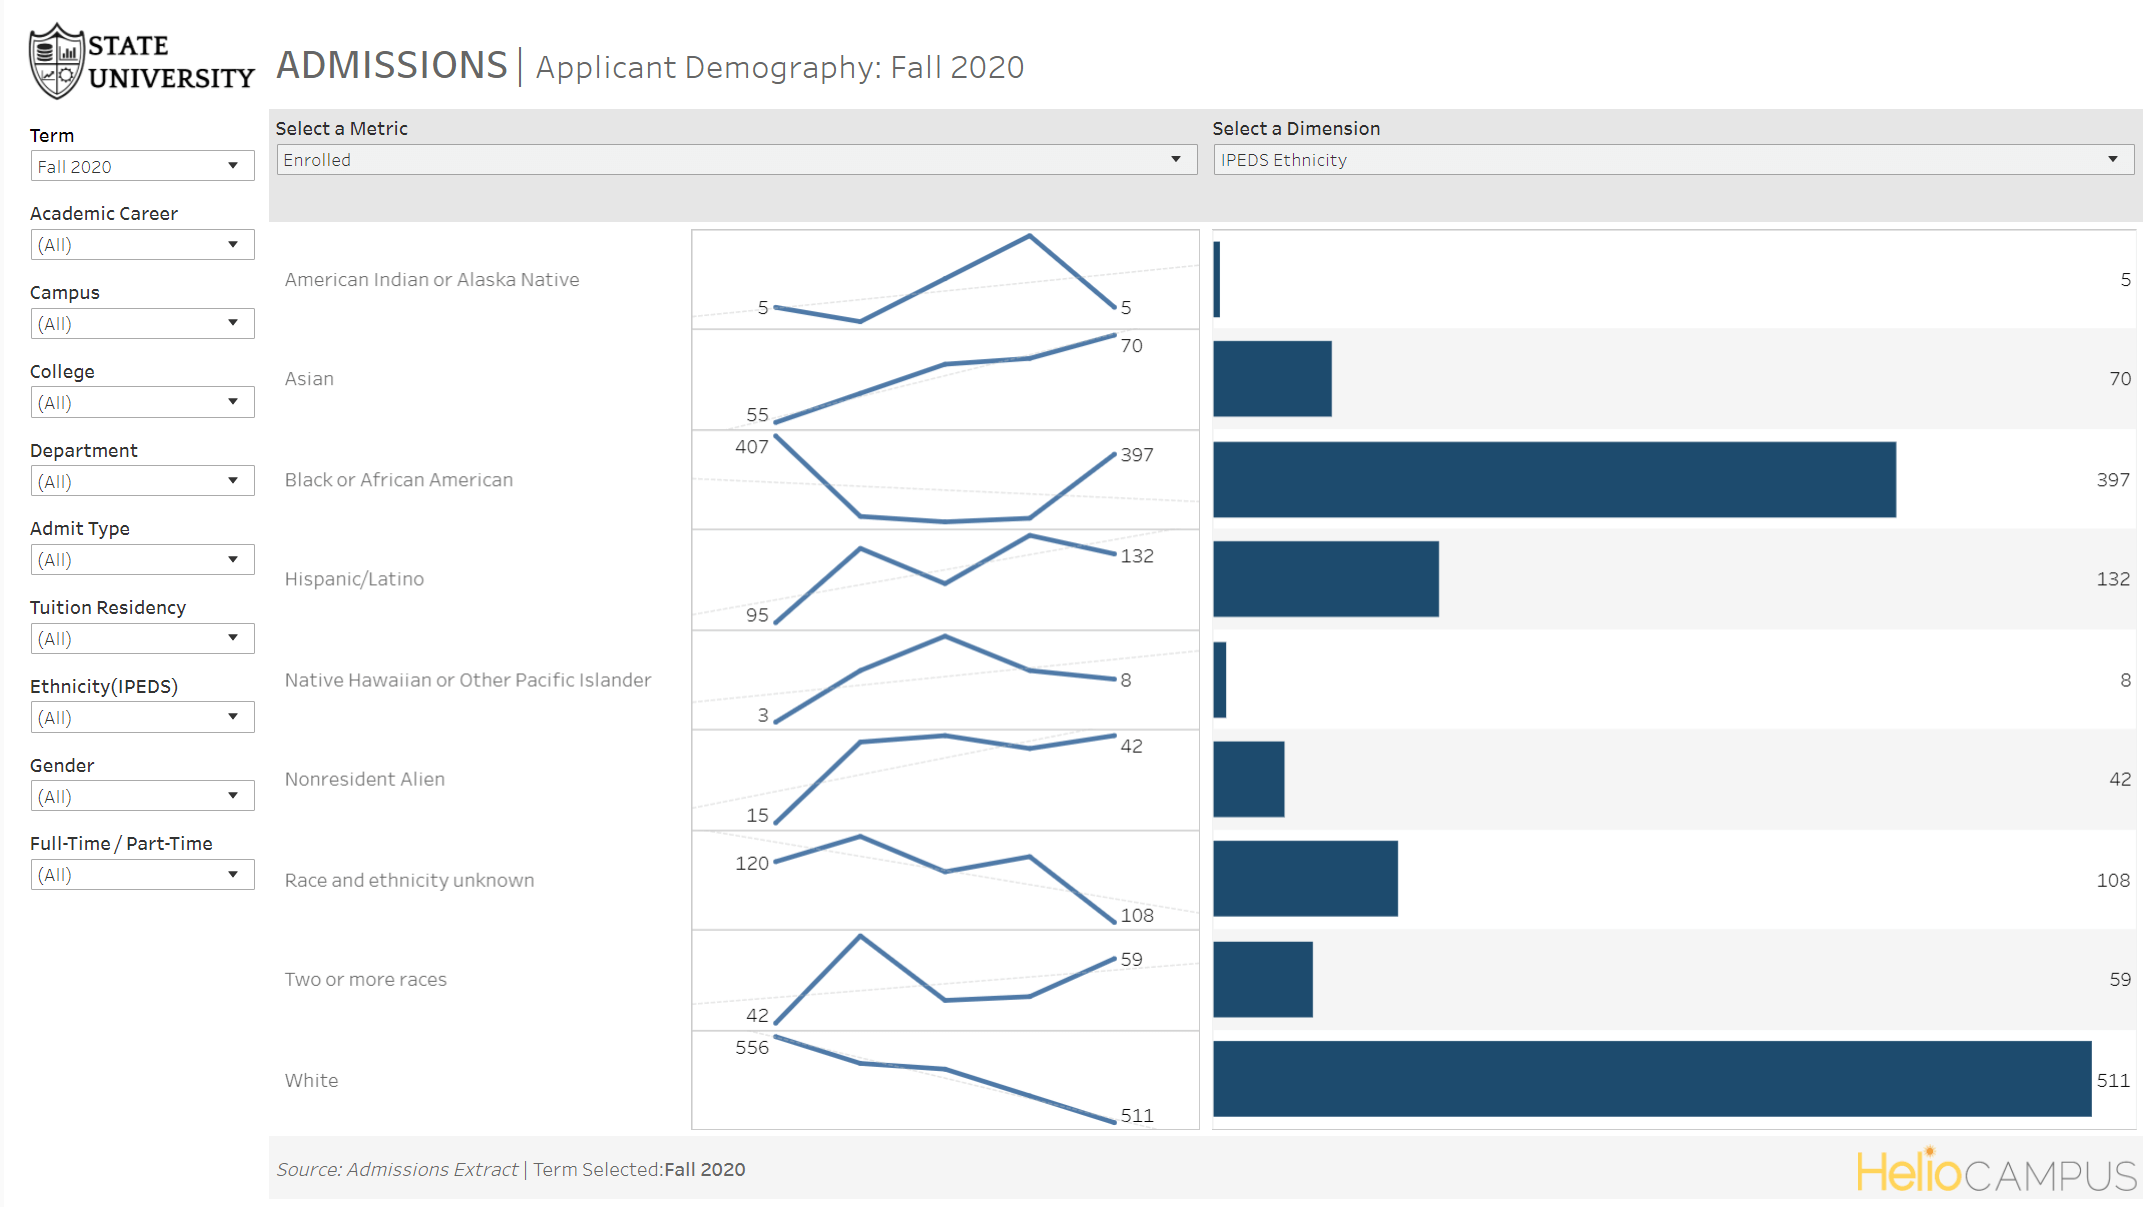 Product screenshot of graphs comparing applicant demography